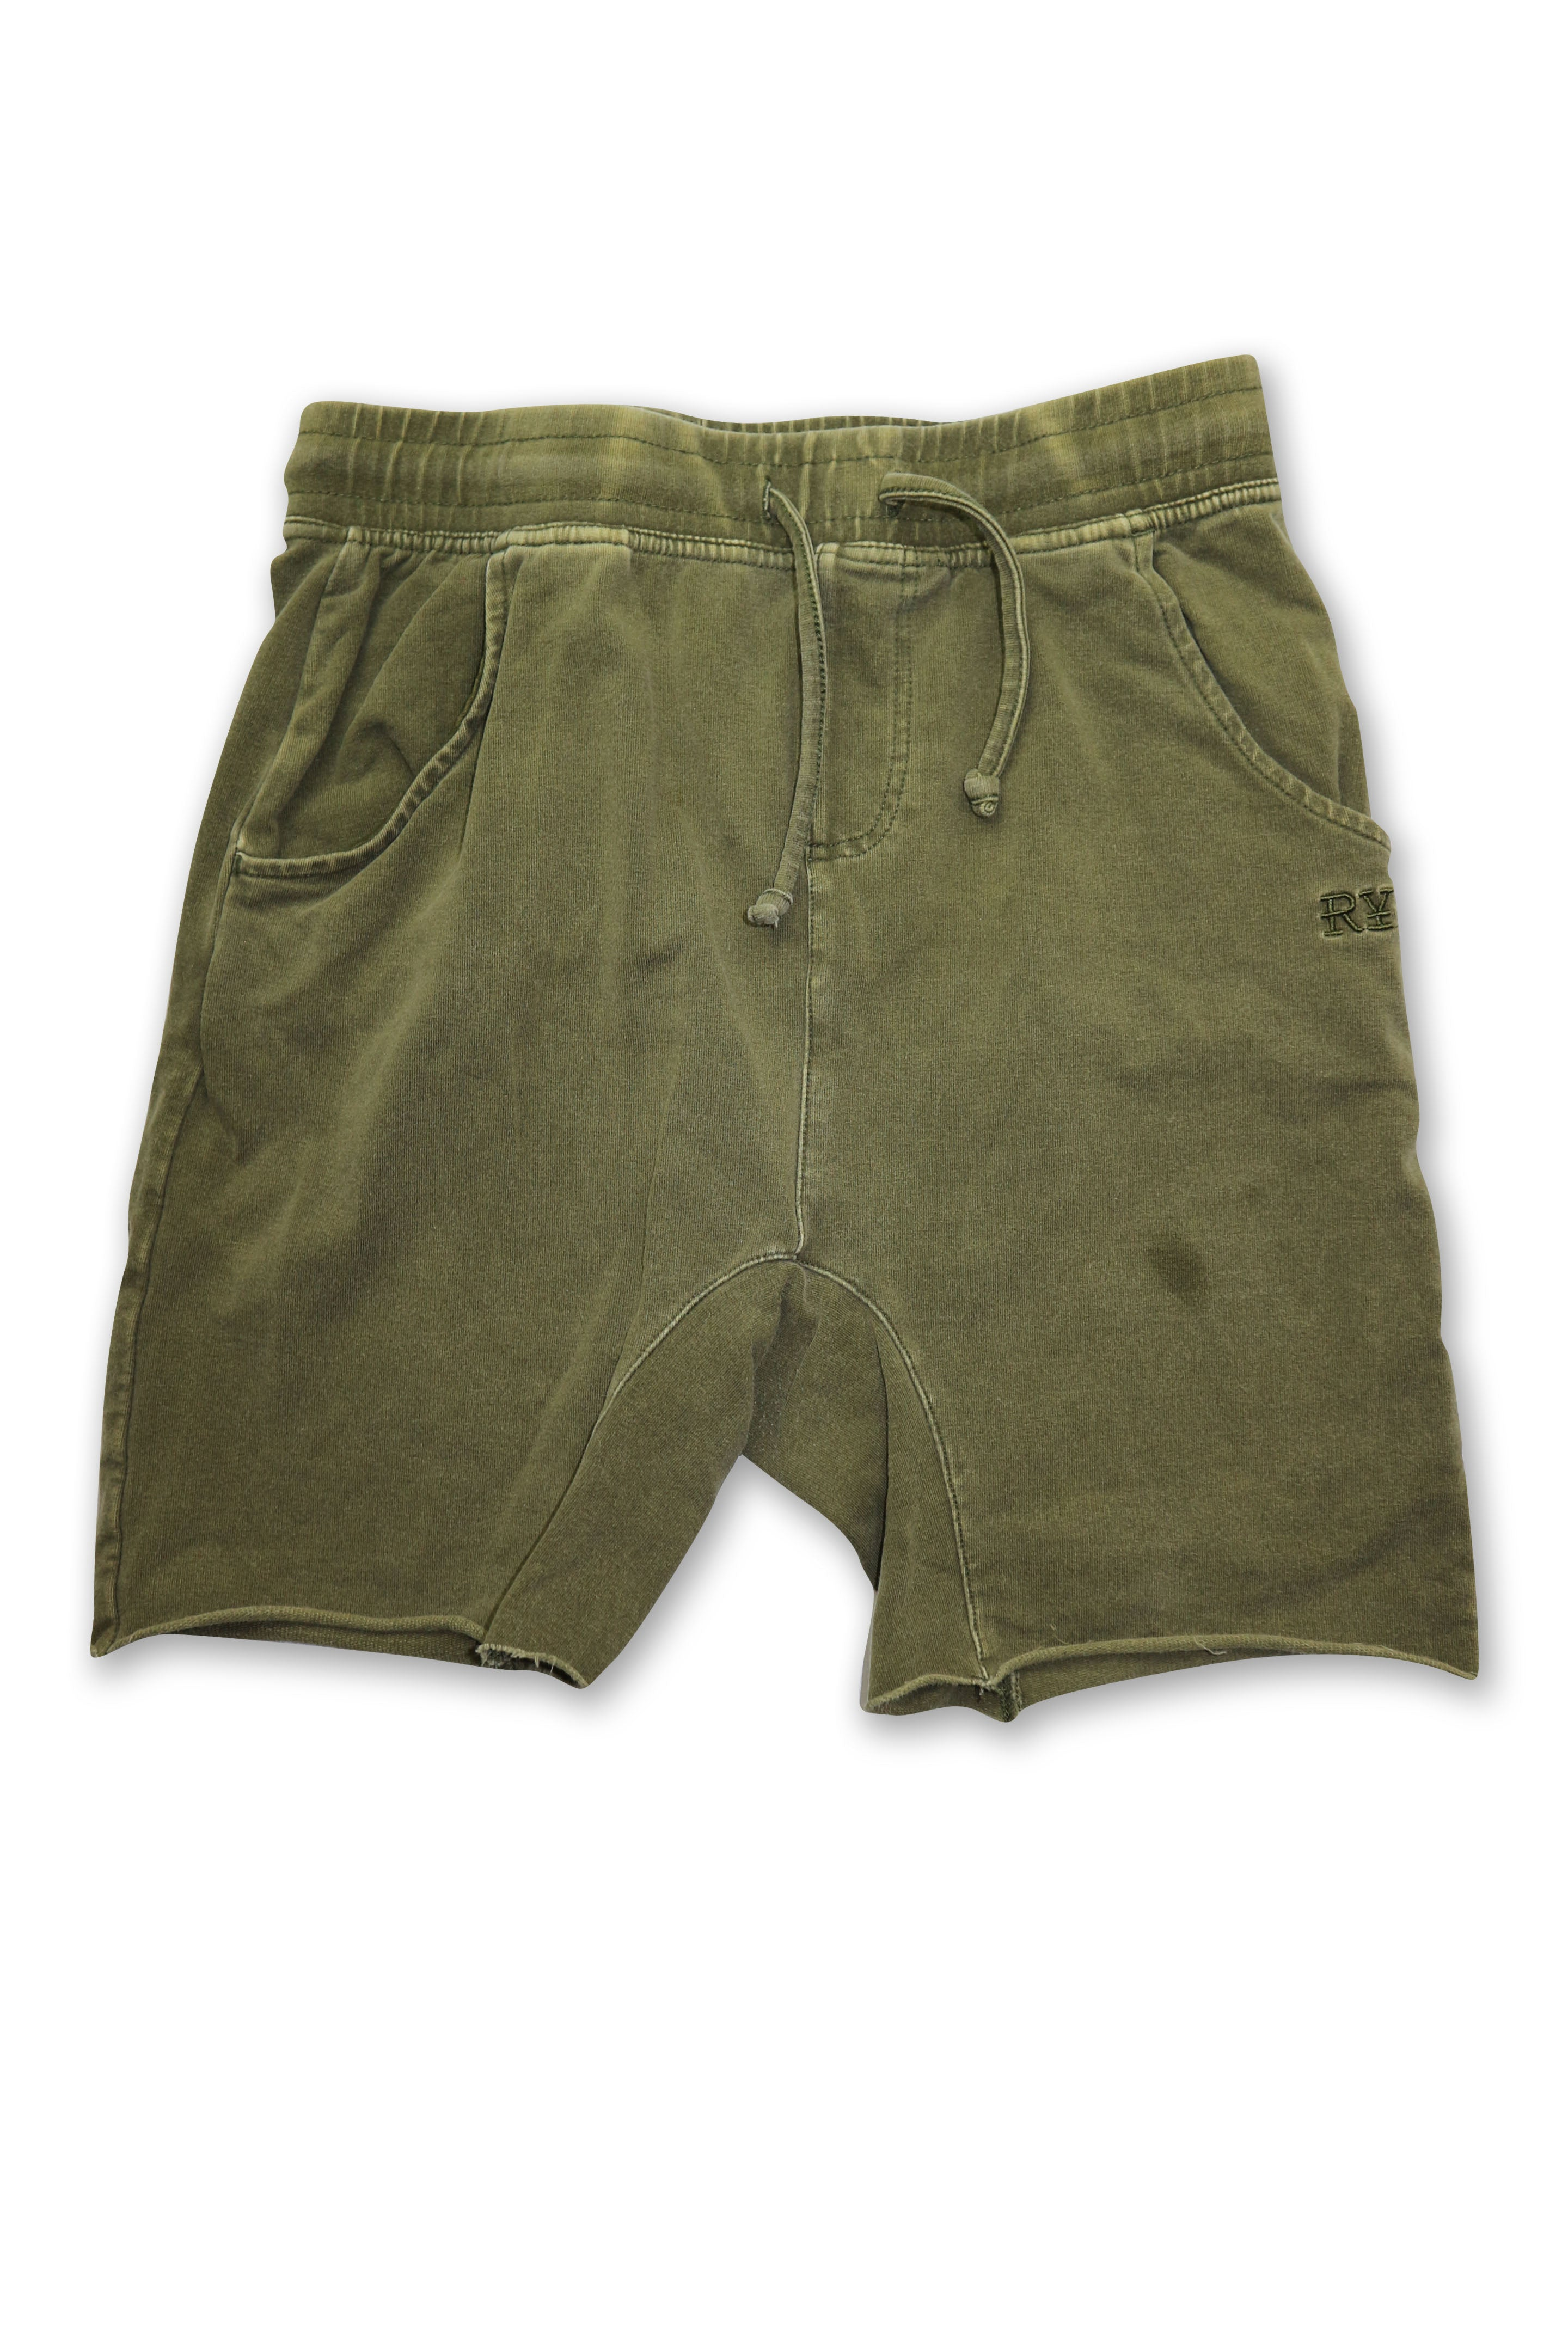 Rock Your Kid Shorts size 12